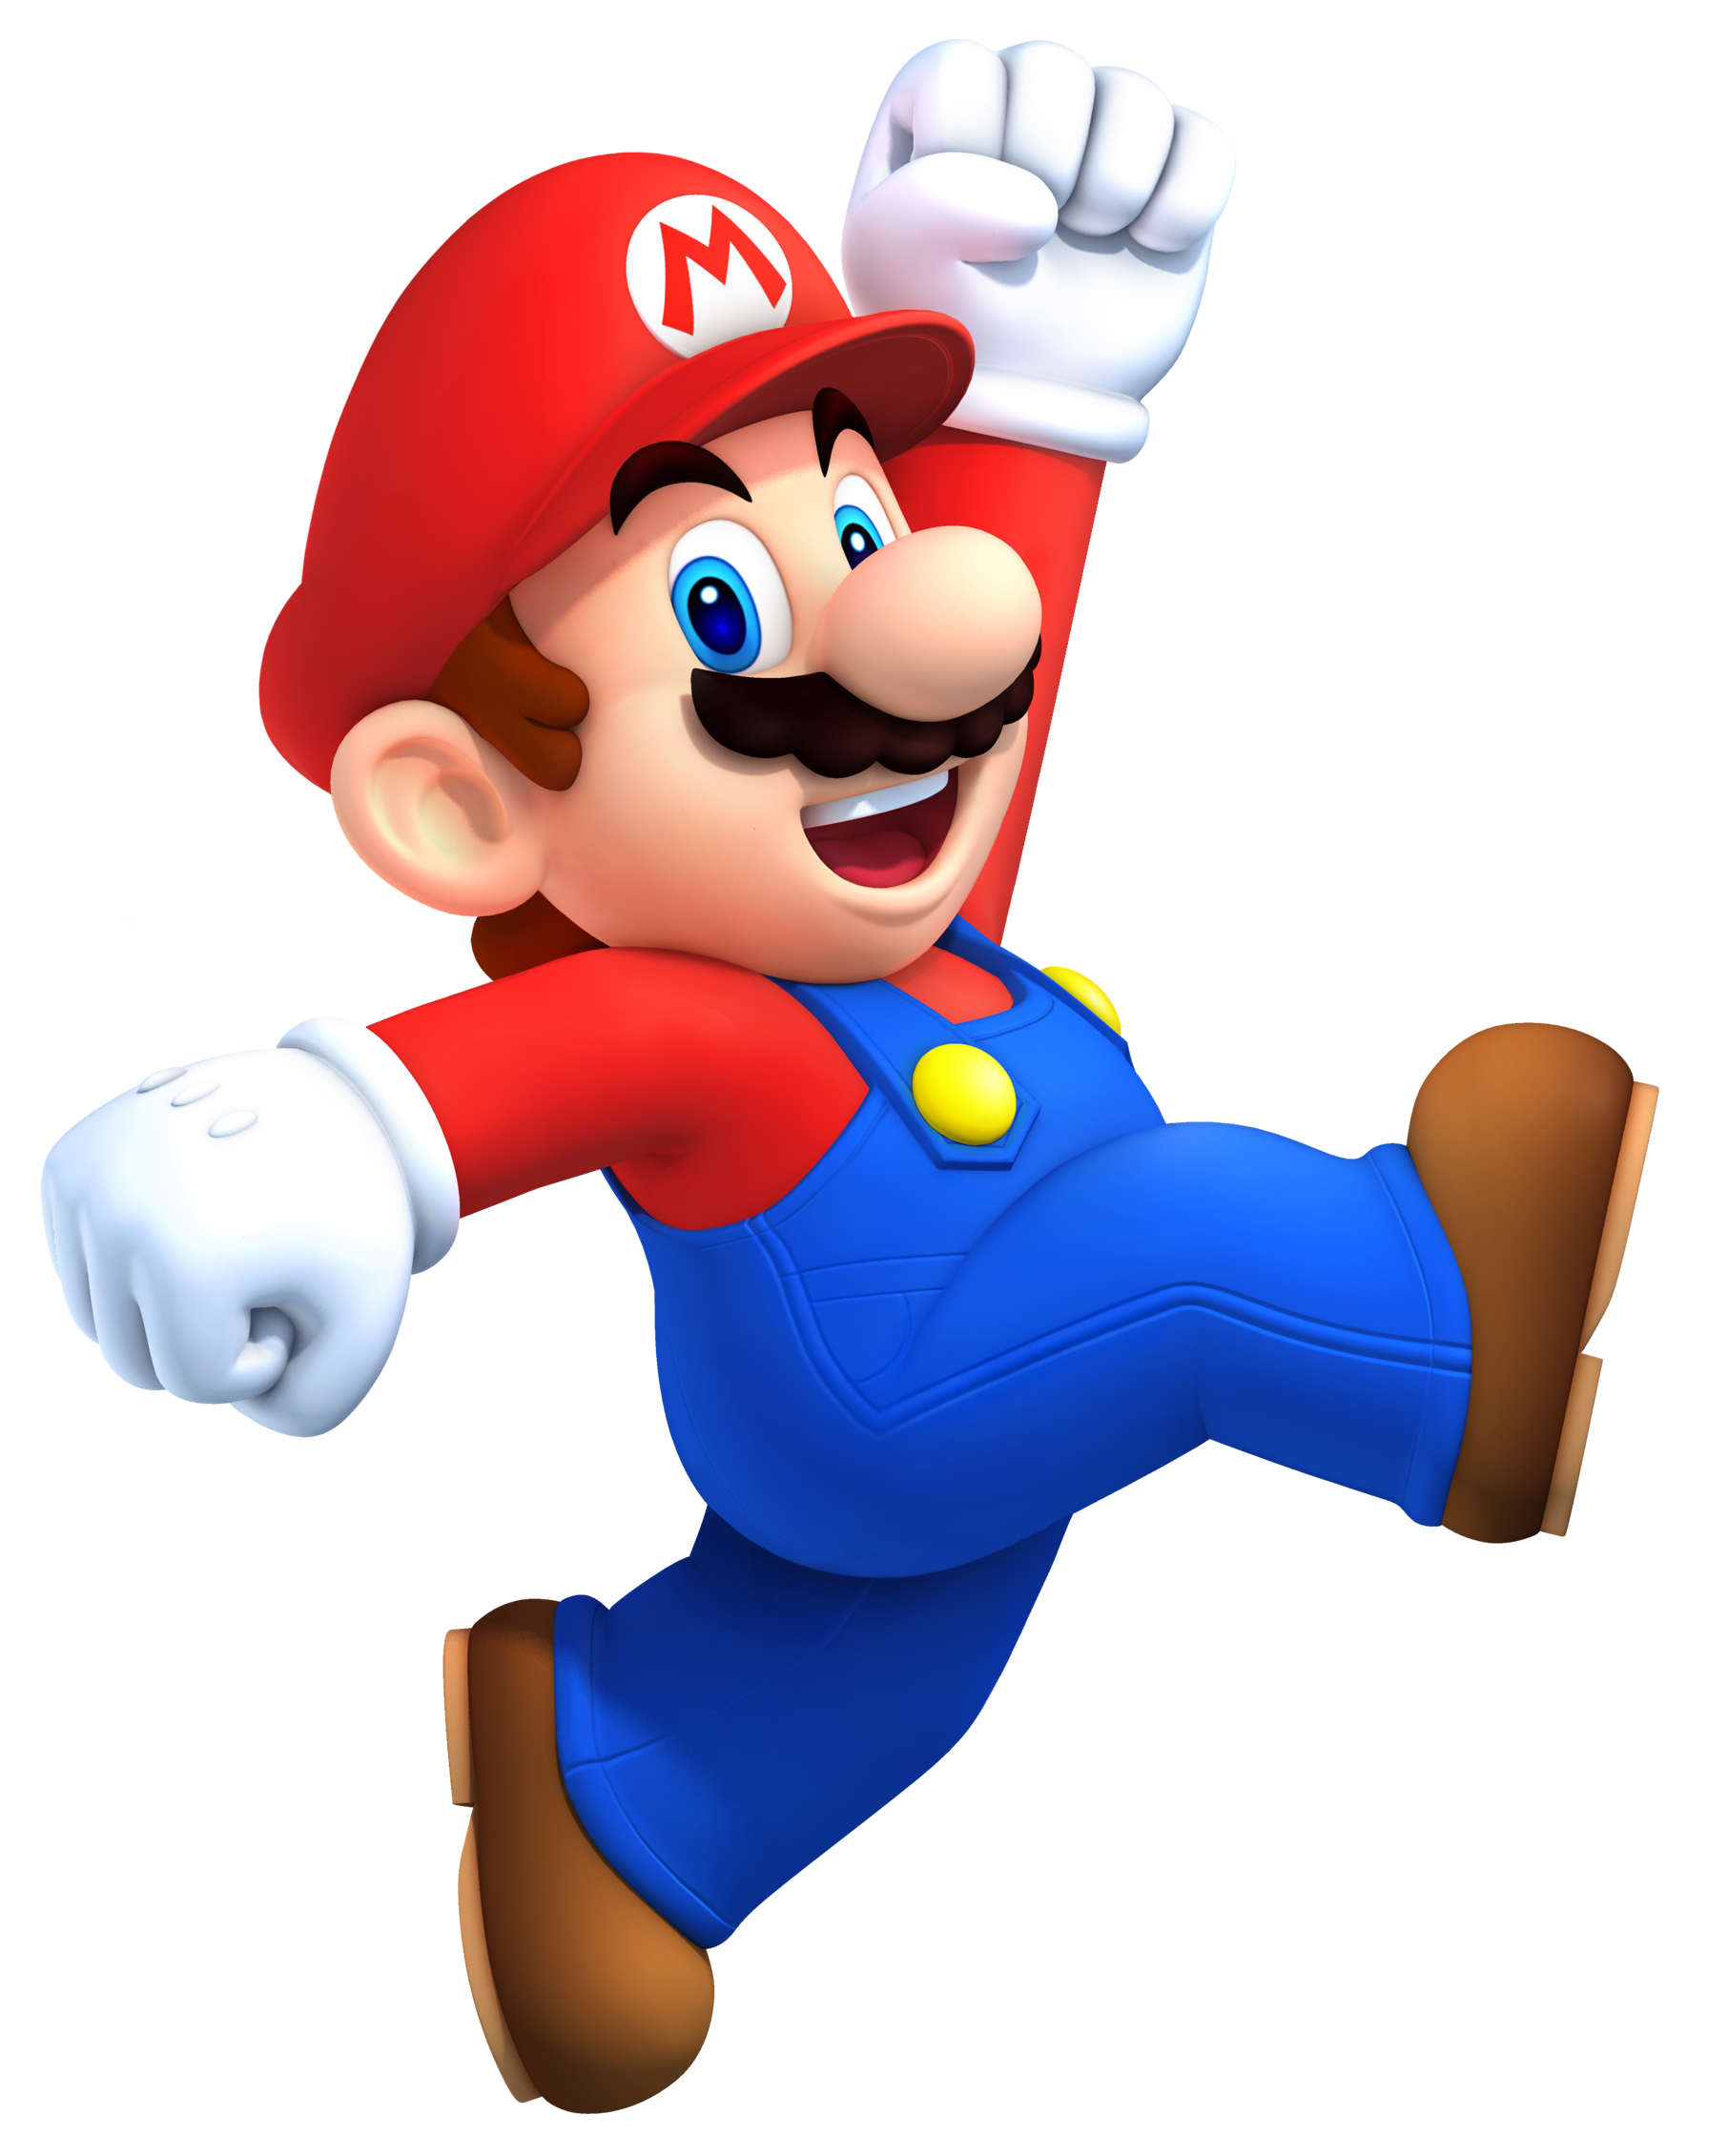 . PlusPng.com file size: 1.72 MB, MIME type: image/png) - Mario PNG